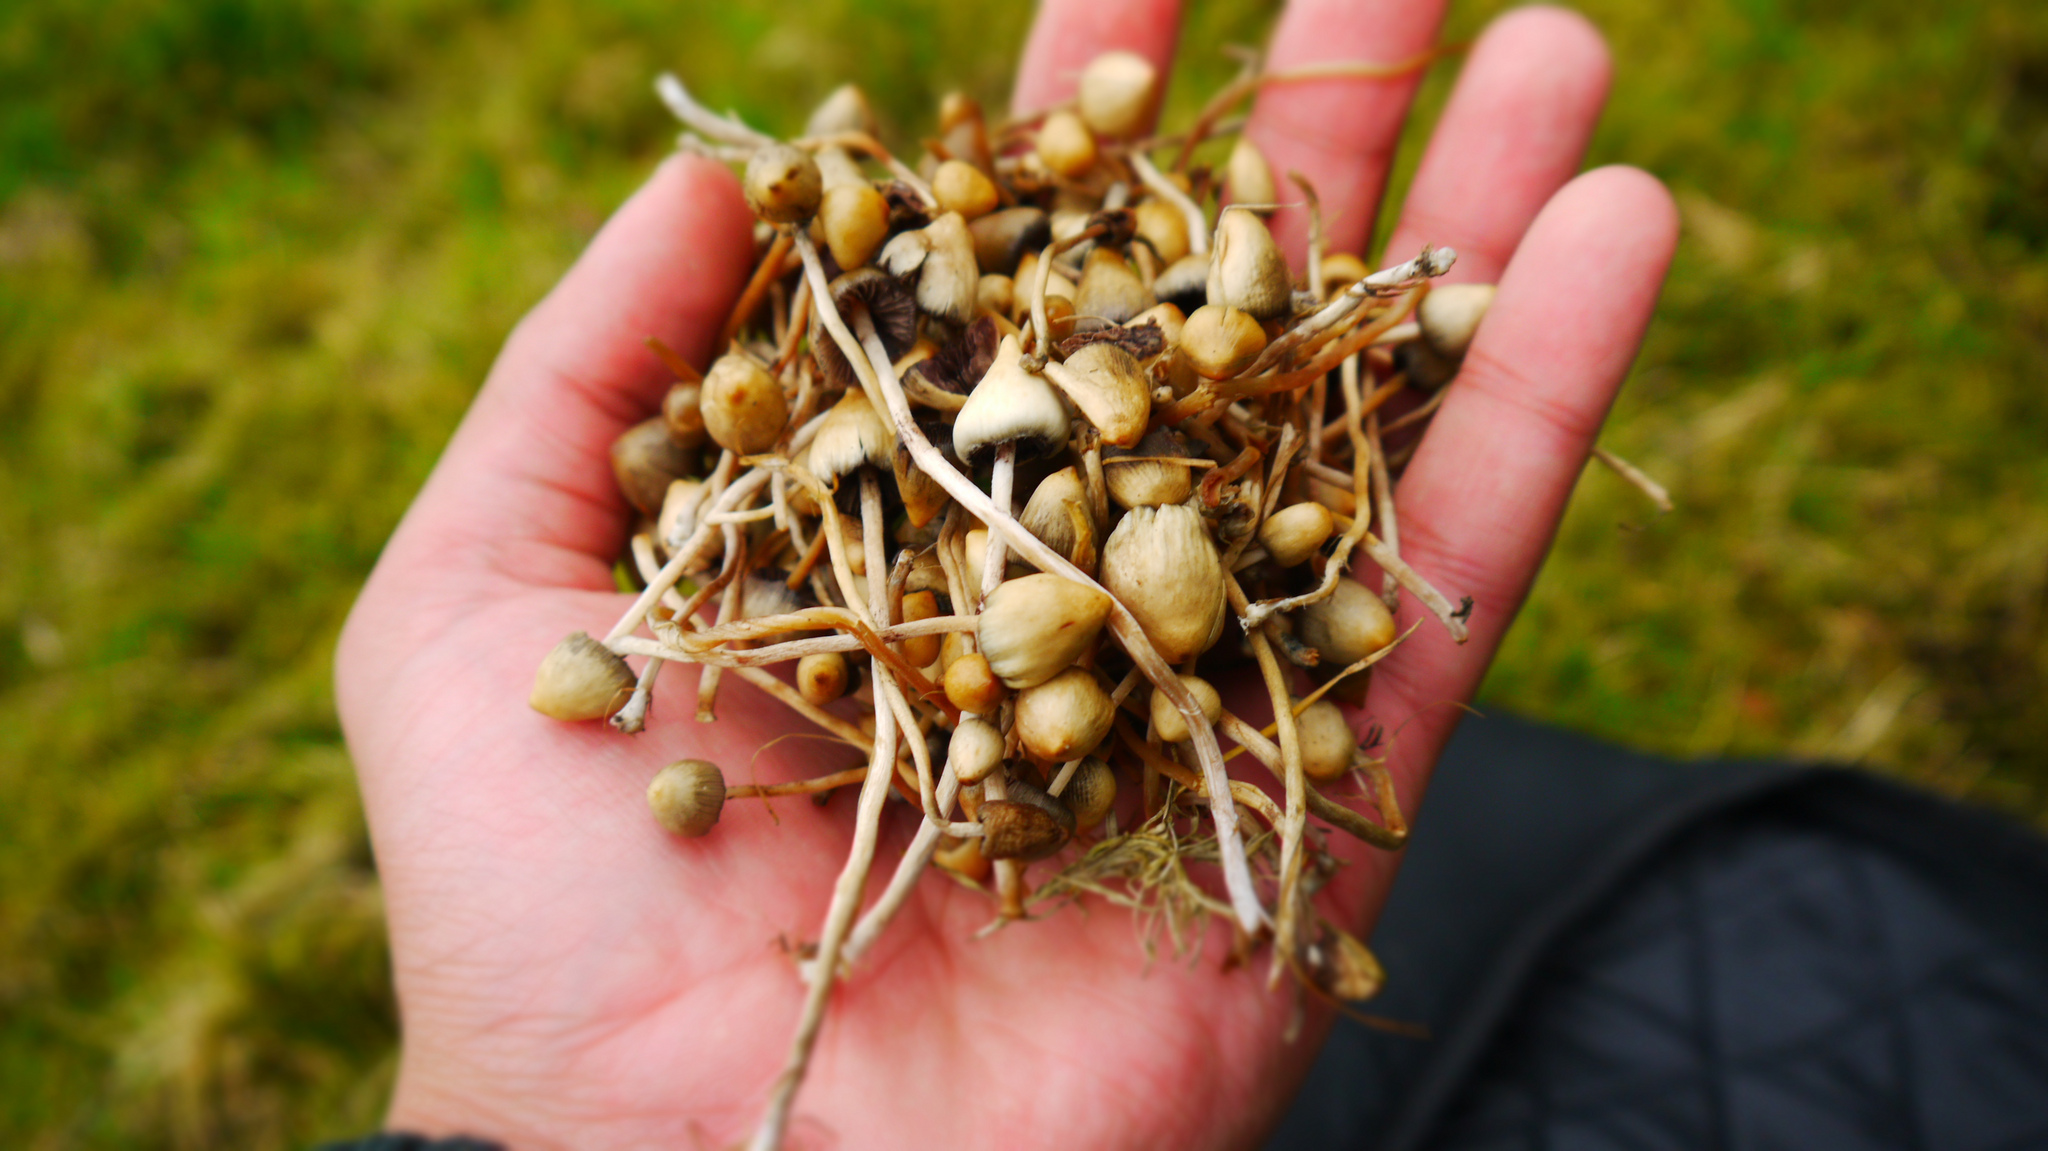 Fungal Therapy The Debate Over Magic Mushrooms In